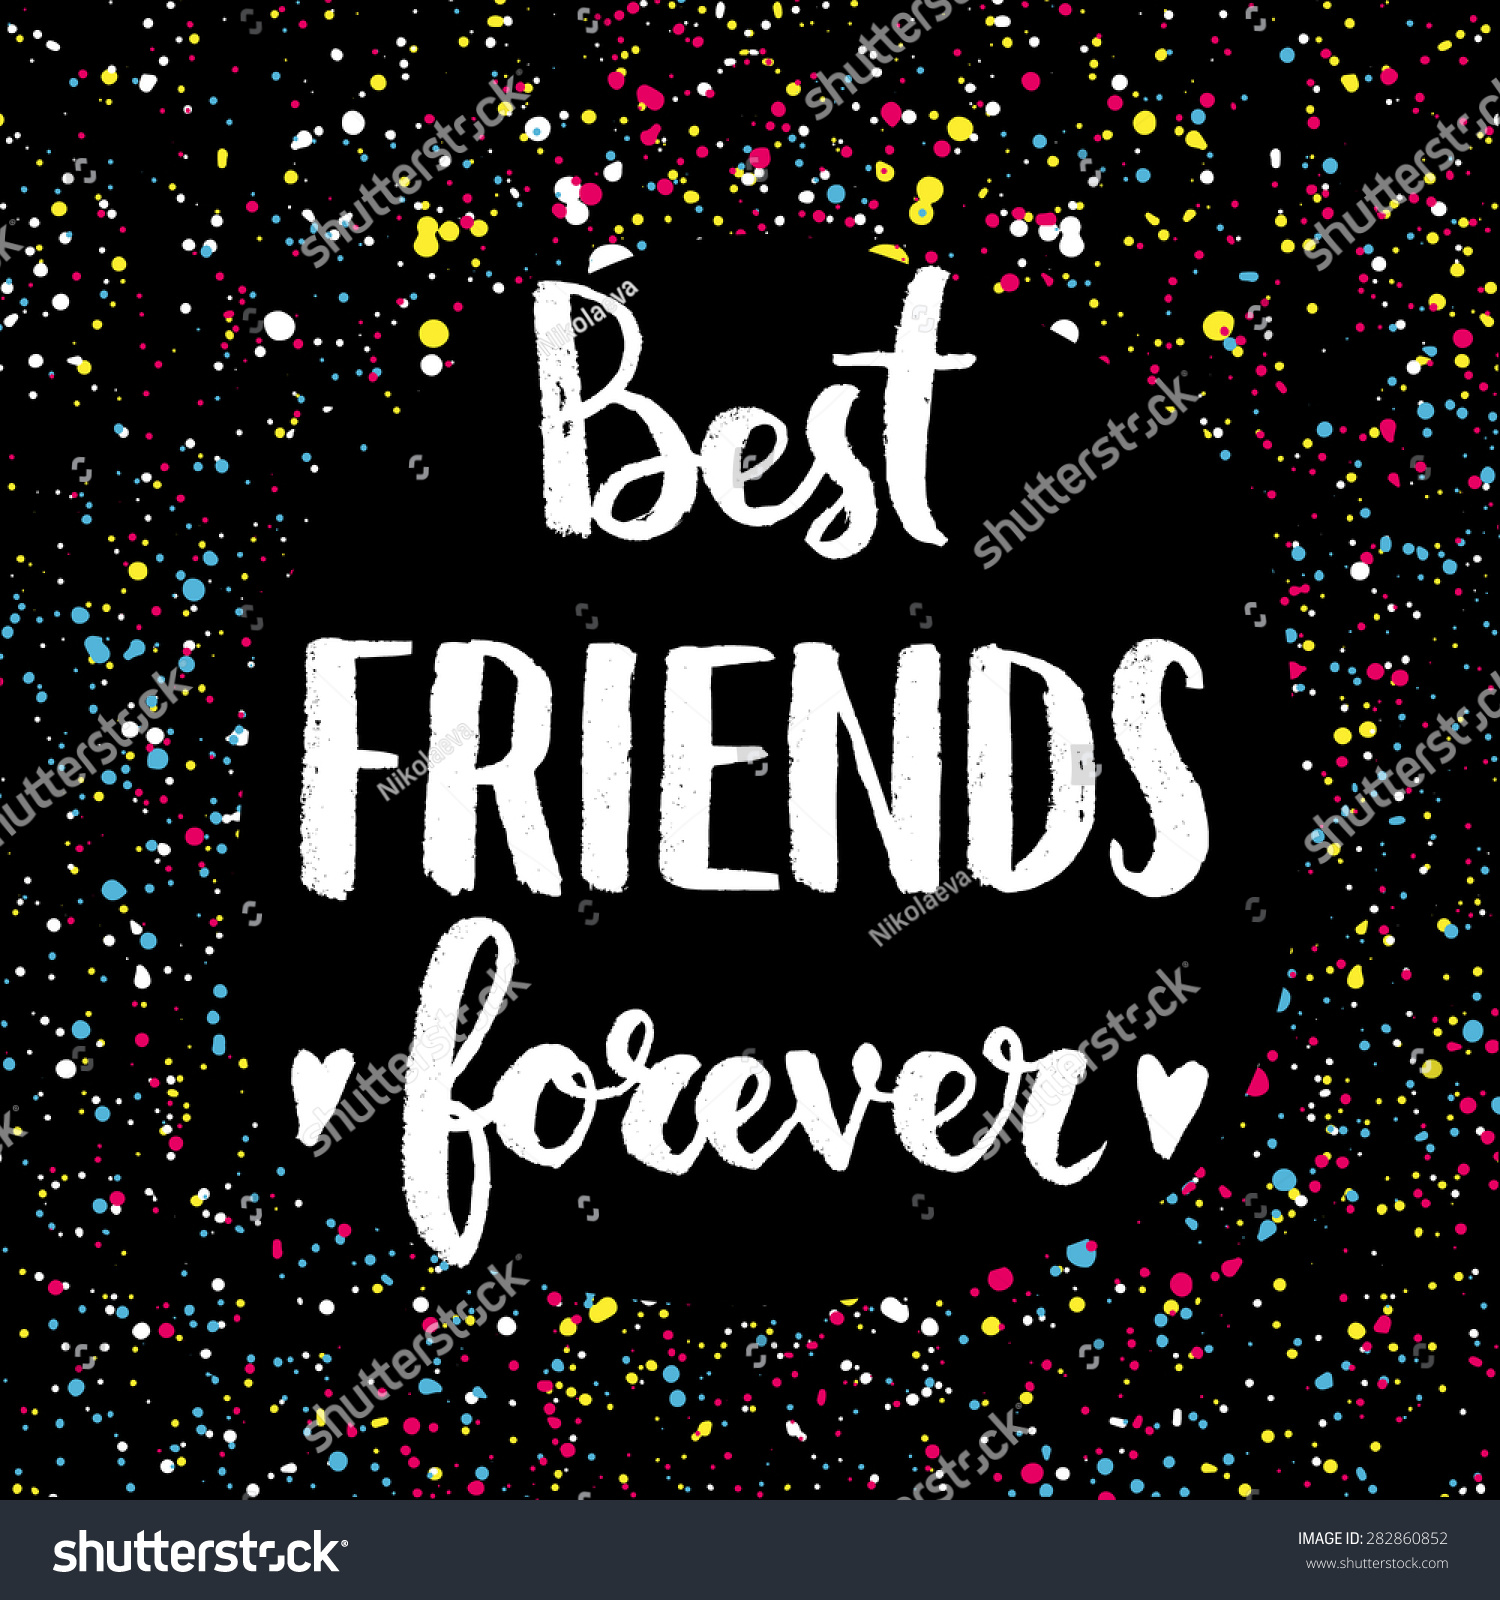 Happy Mood Quotes Wallpapers Pics For Gt Best Friends Forever Backgrounds